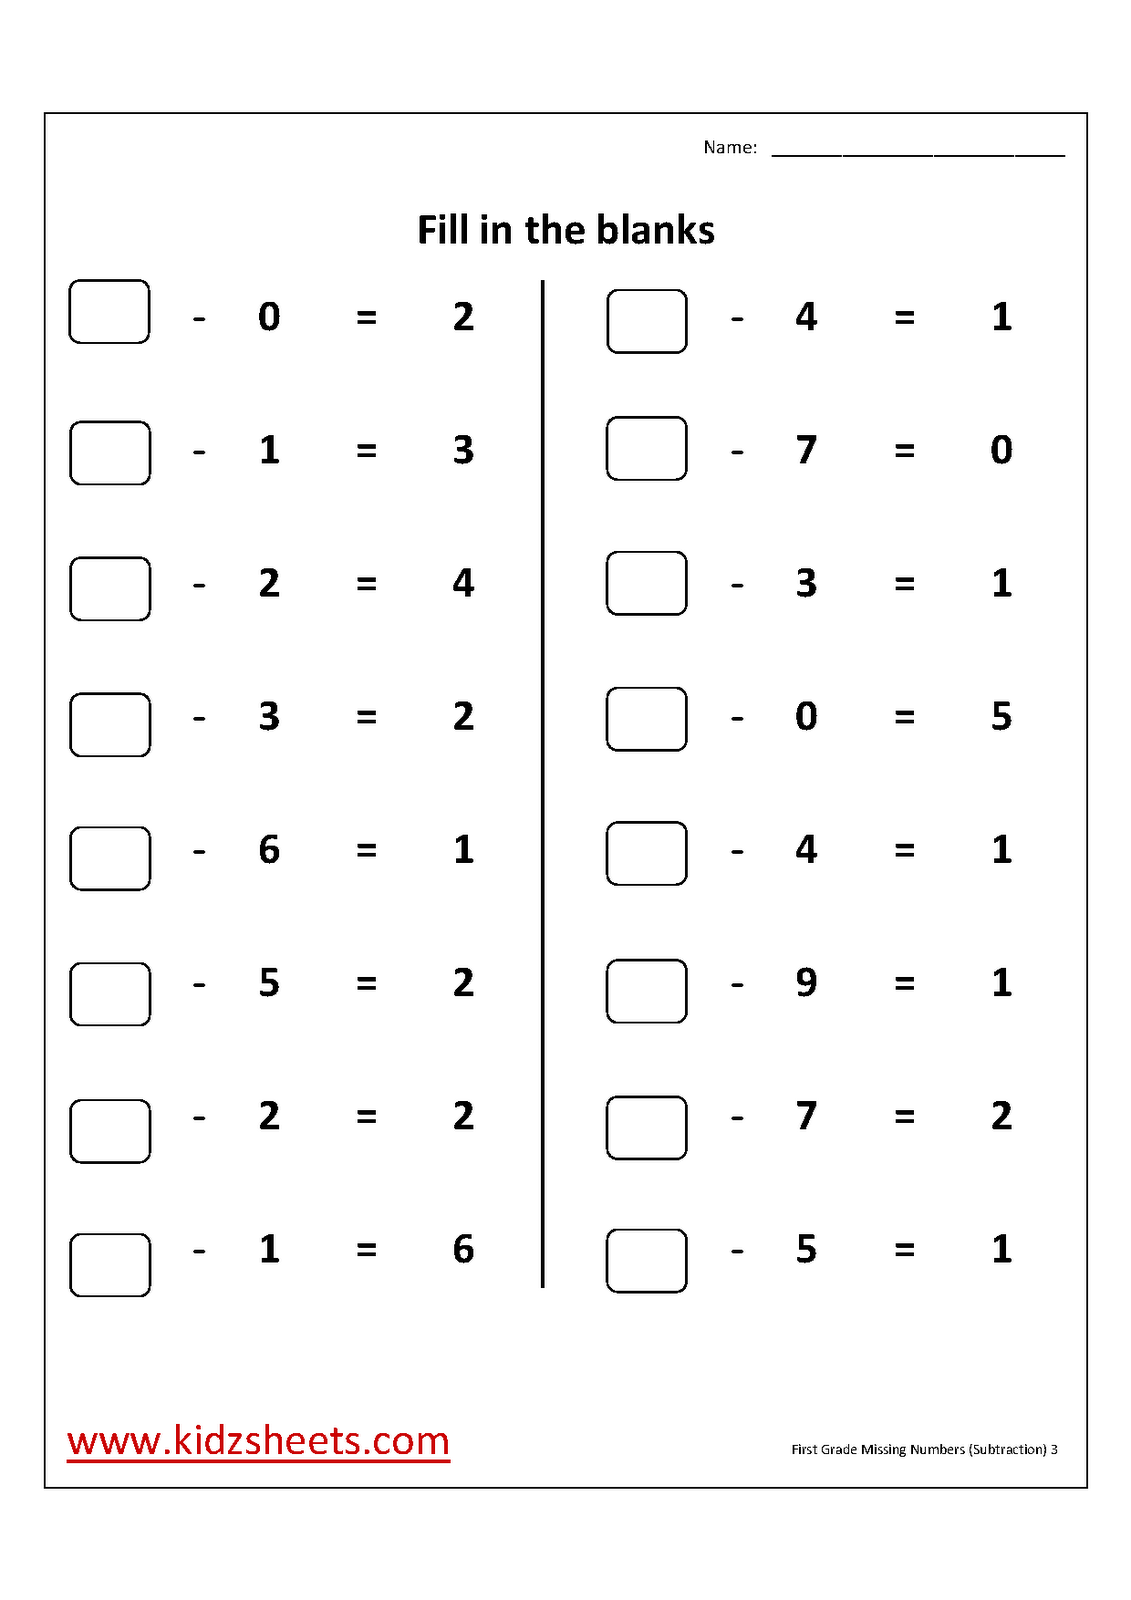 Kidz Worksheets First Grade Missing Numbers Worksheet3